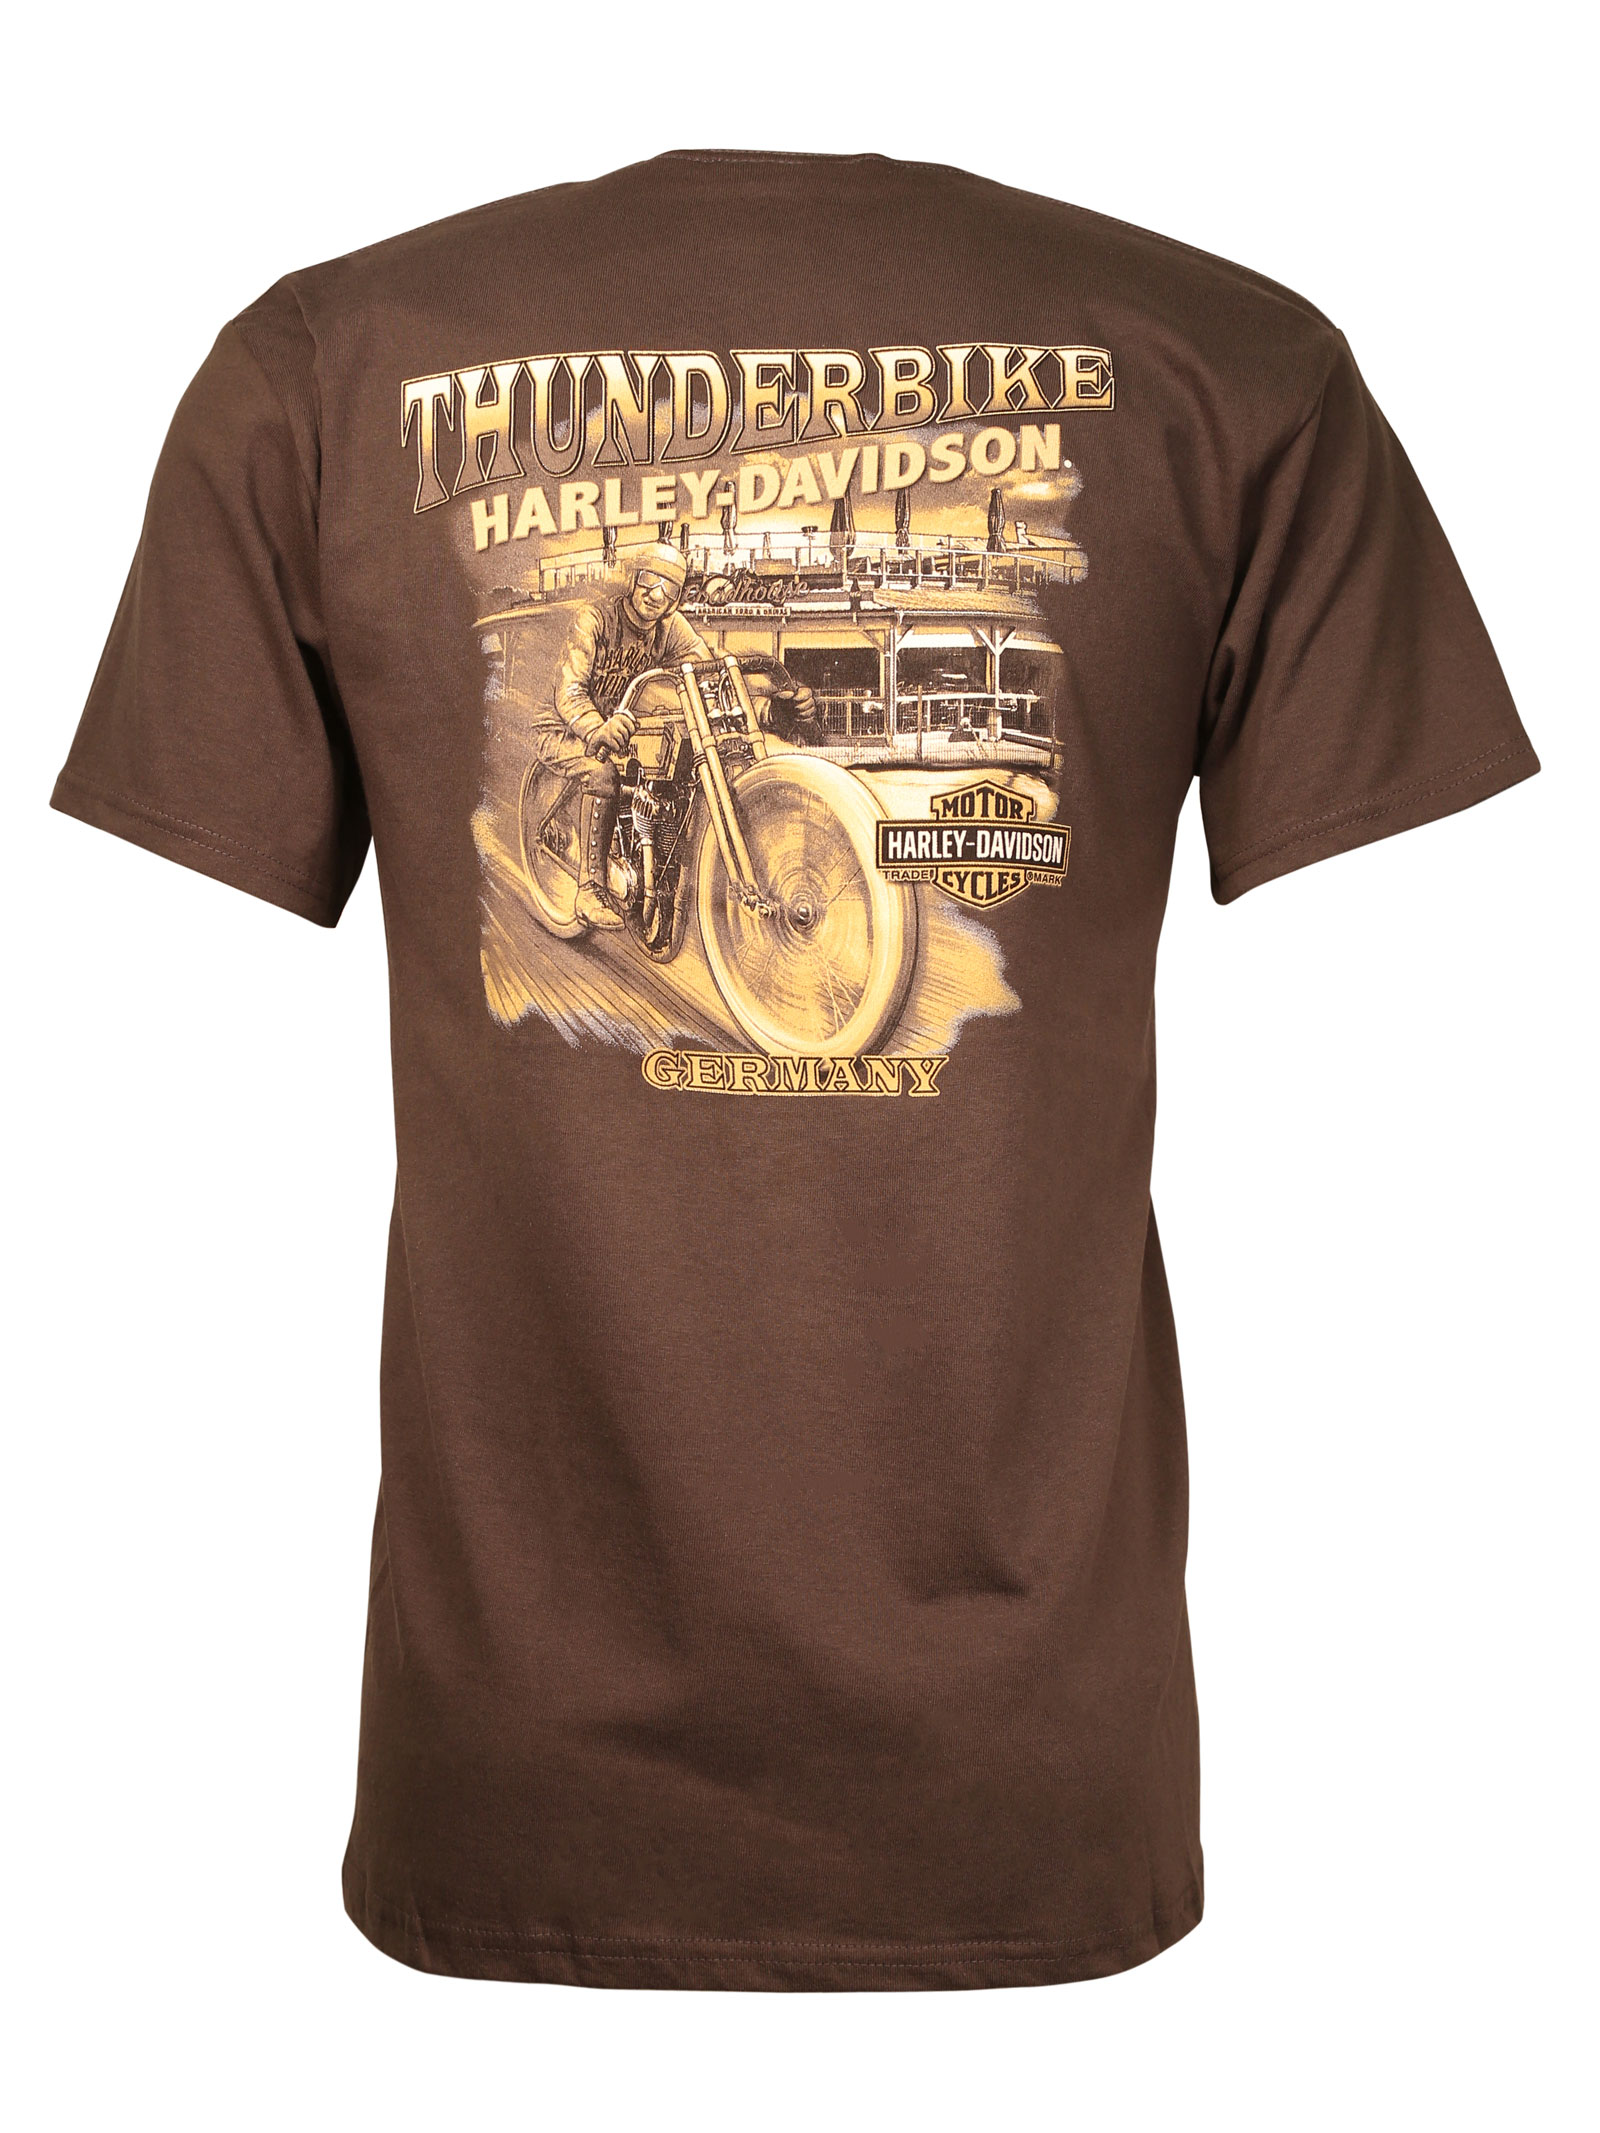 harley davidson t shirt chrome trip at thunderbike shop. Black Bedroom Furniture Sets. Home Design Ideas